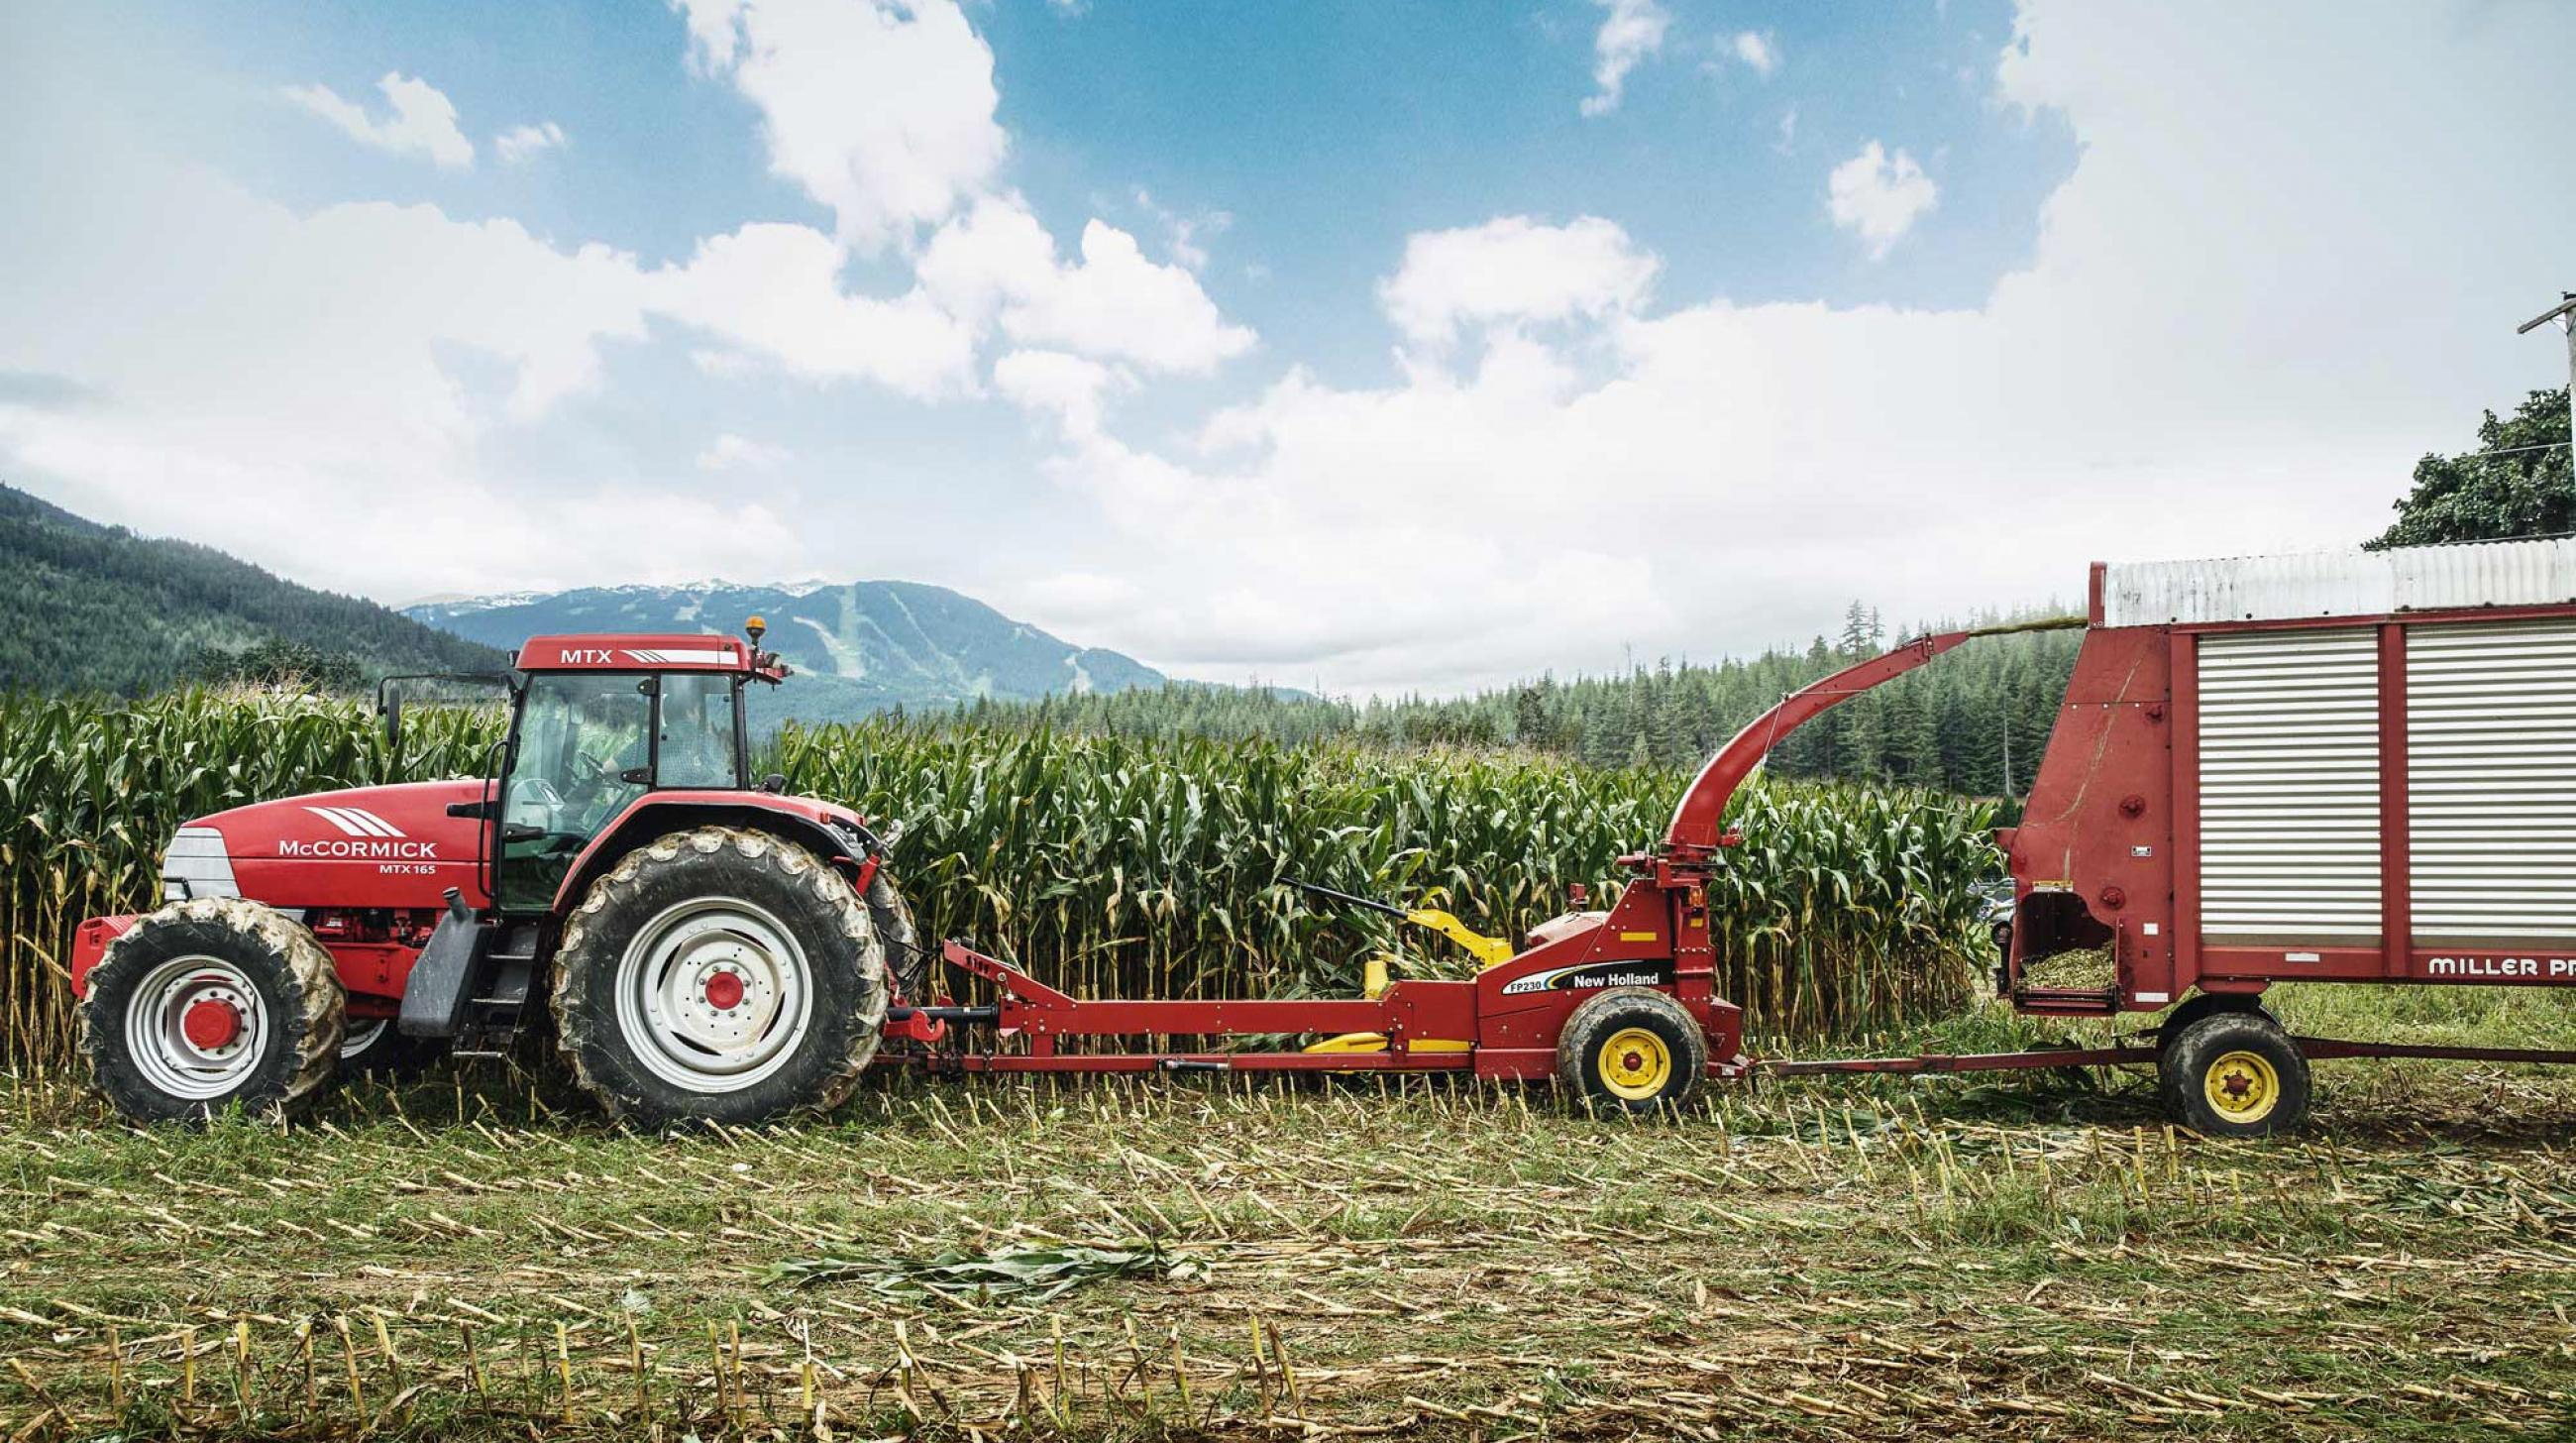 Tractor with pull behind harvester harvesting corn